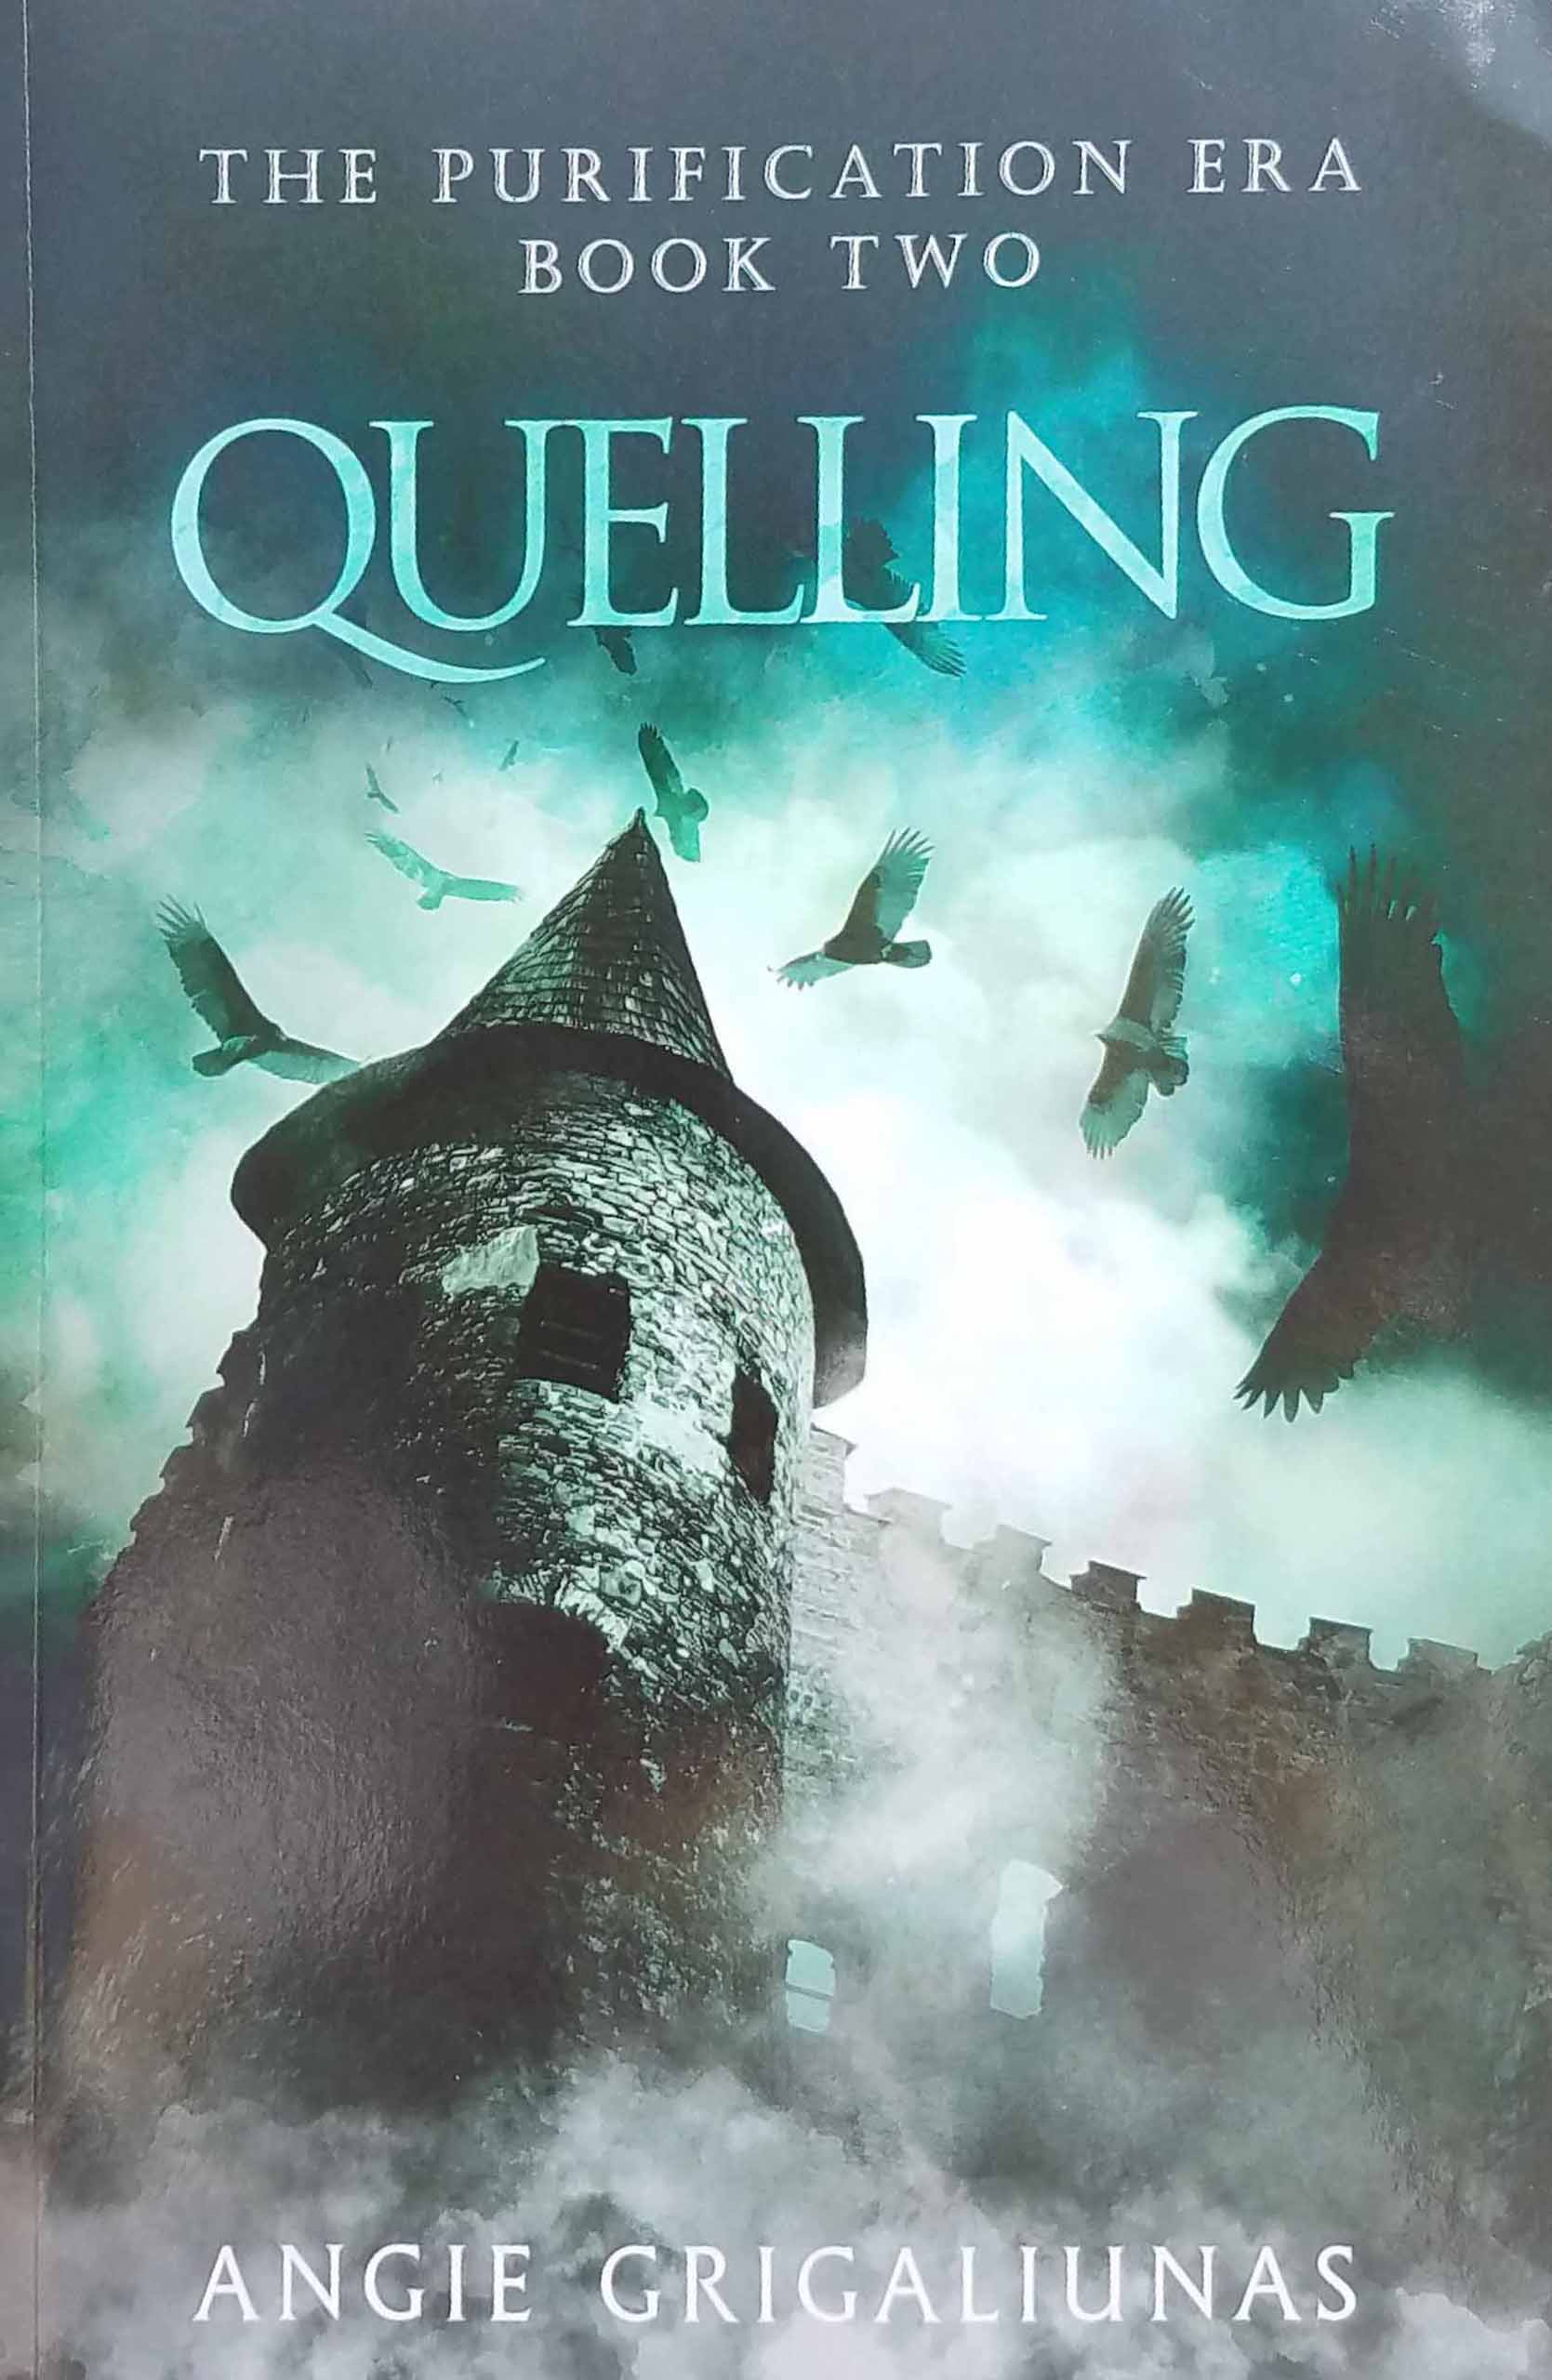 Quelling Book Cover Image